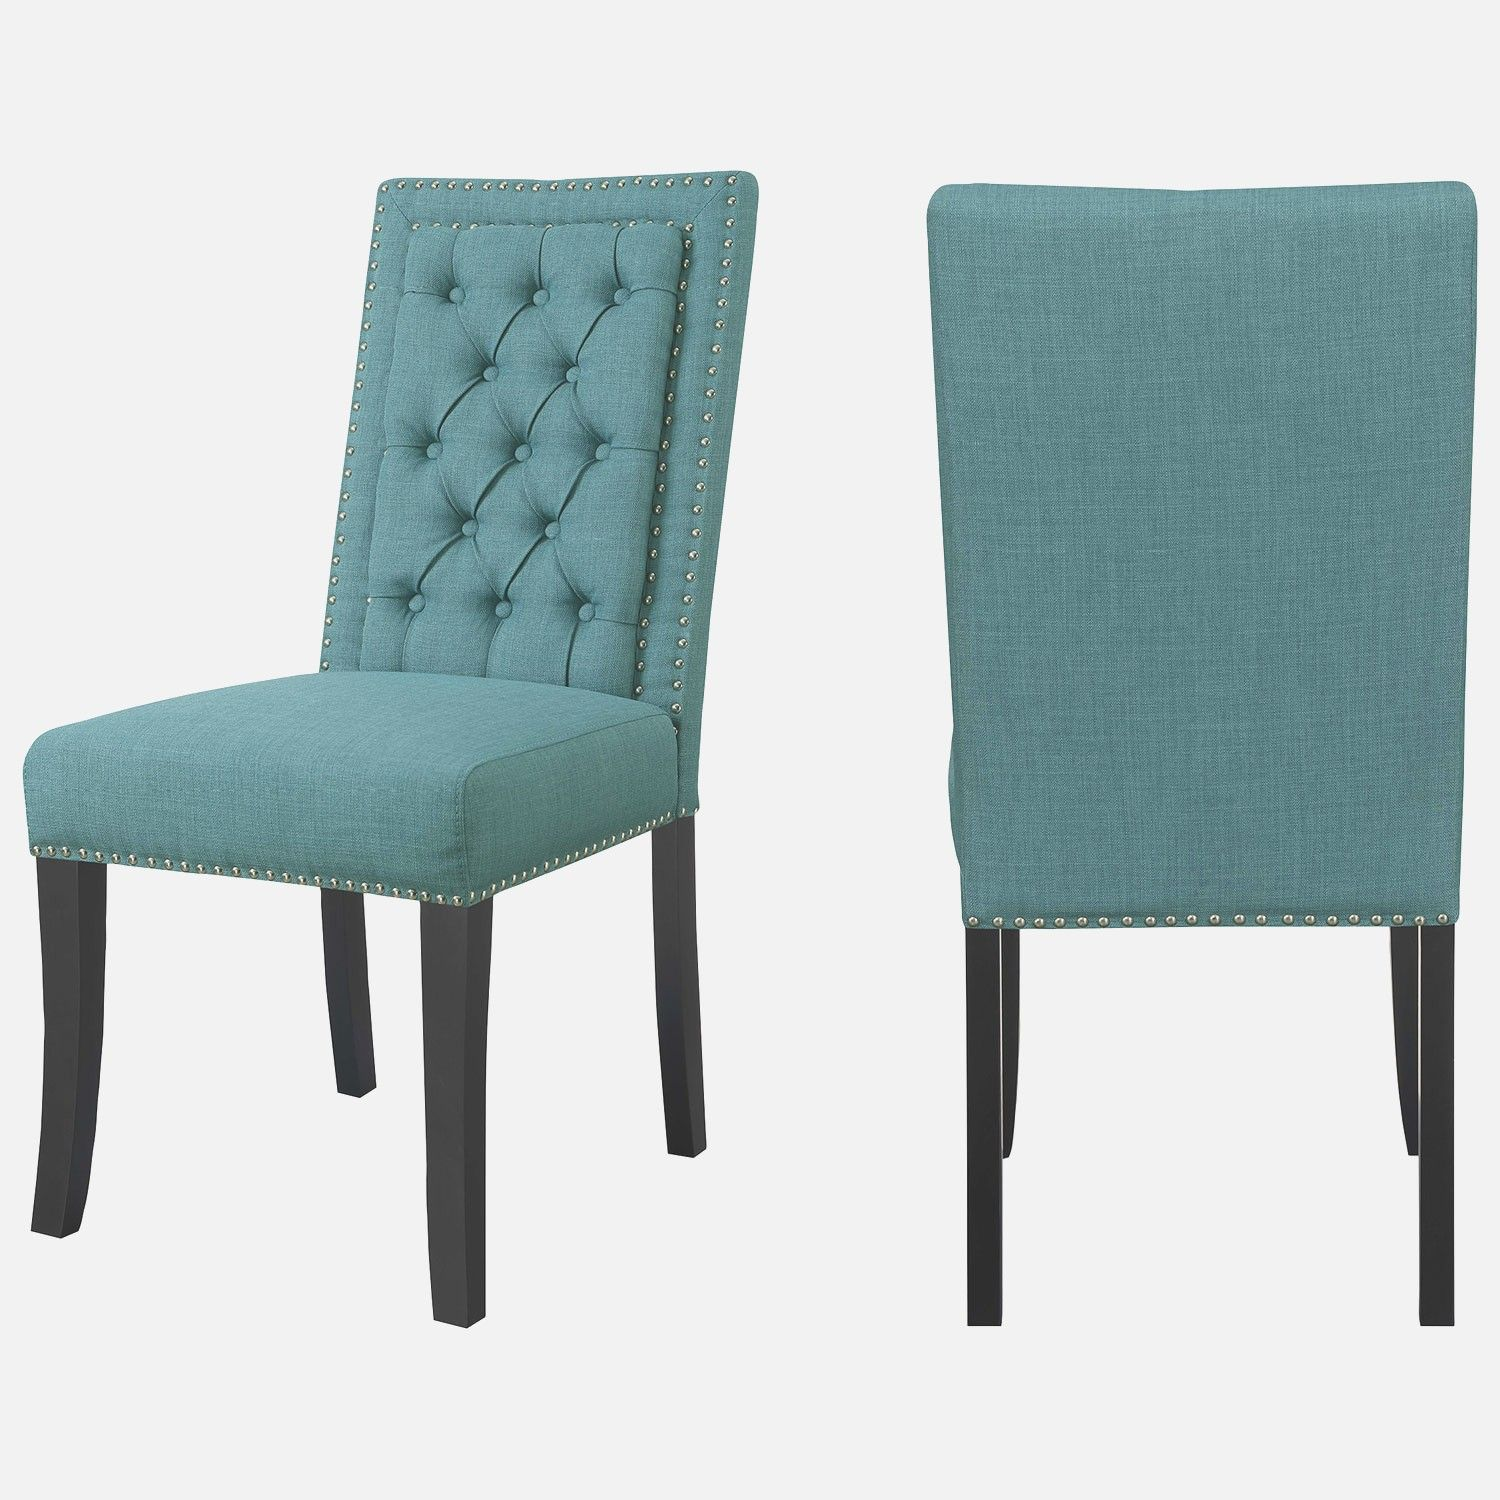 Set Of 4 Kitchen Chairs - cheap set of 4 kitchen chairs, set of 4 ...